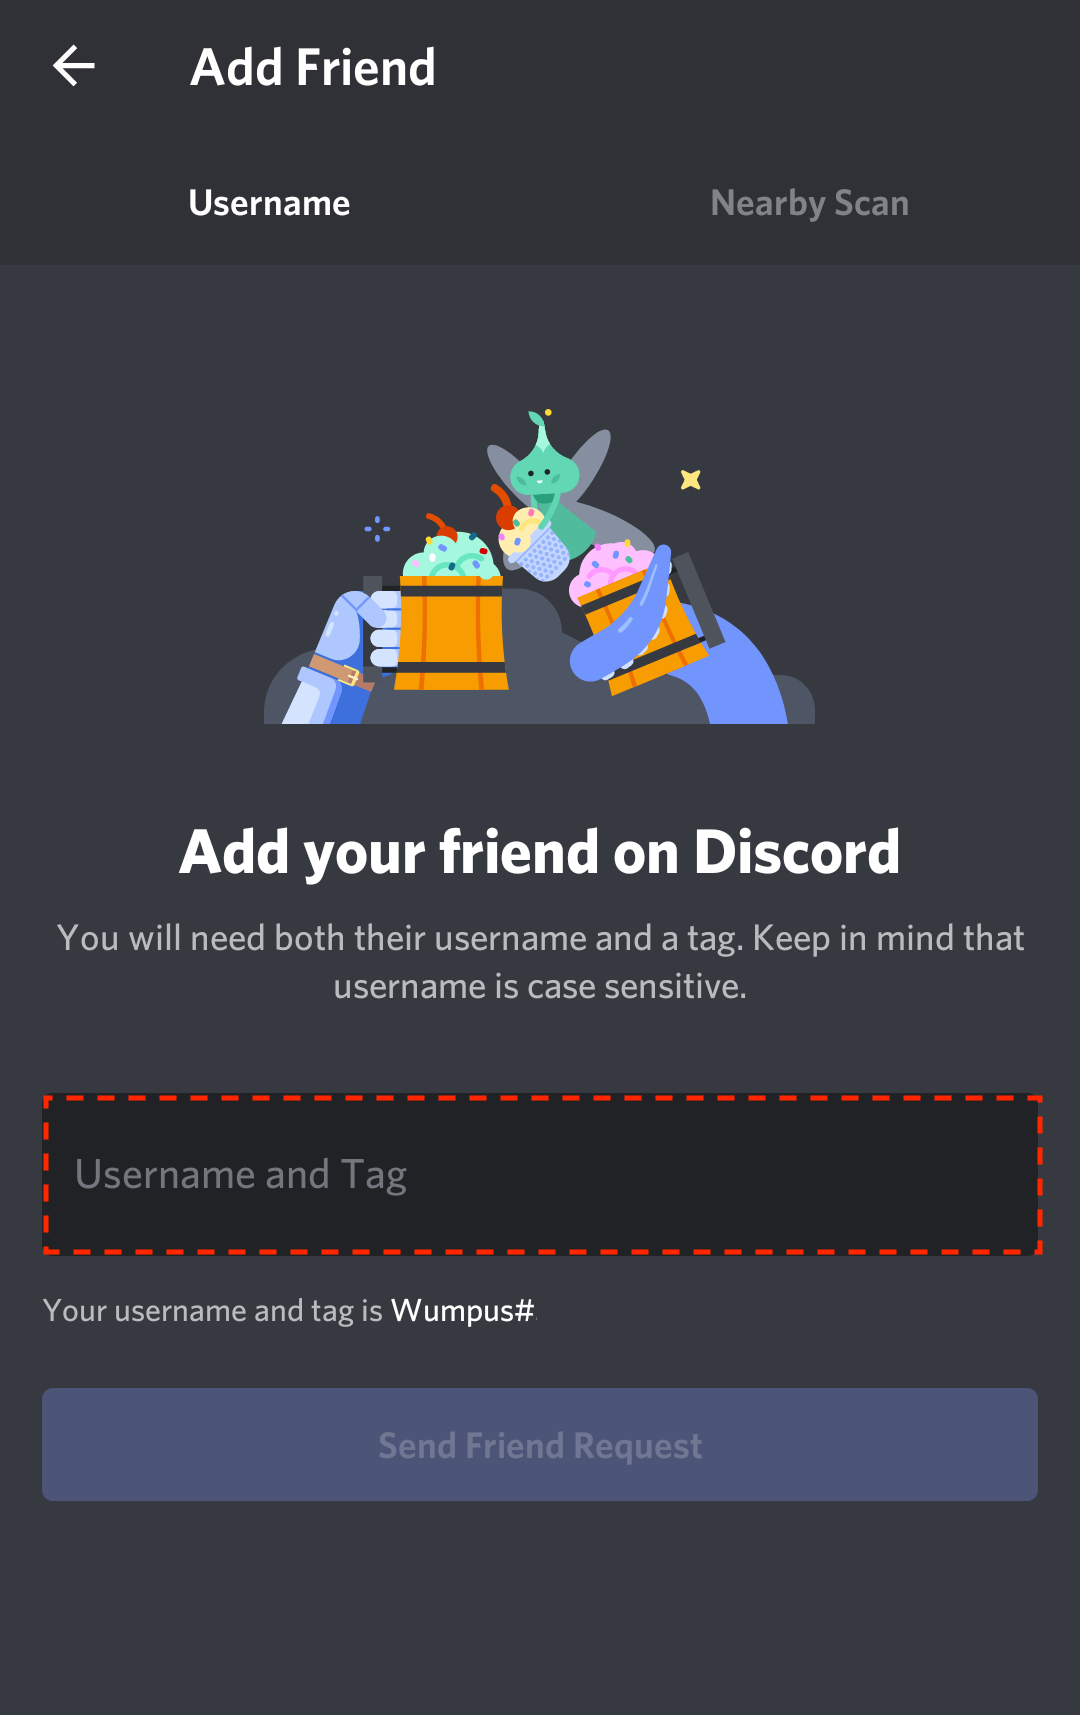 adding_a_friend_username_and_tag.png